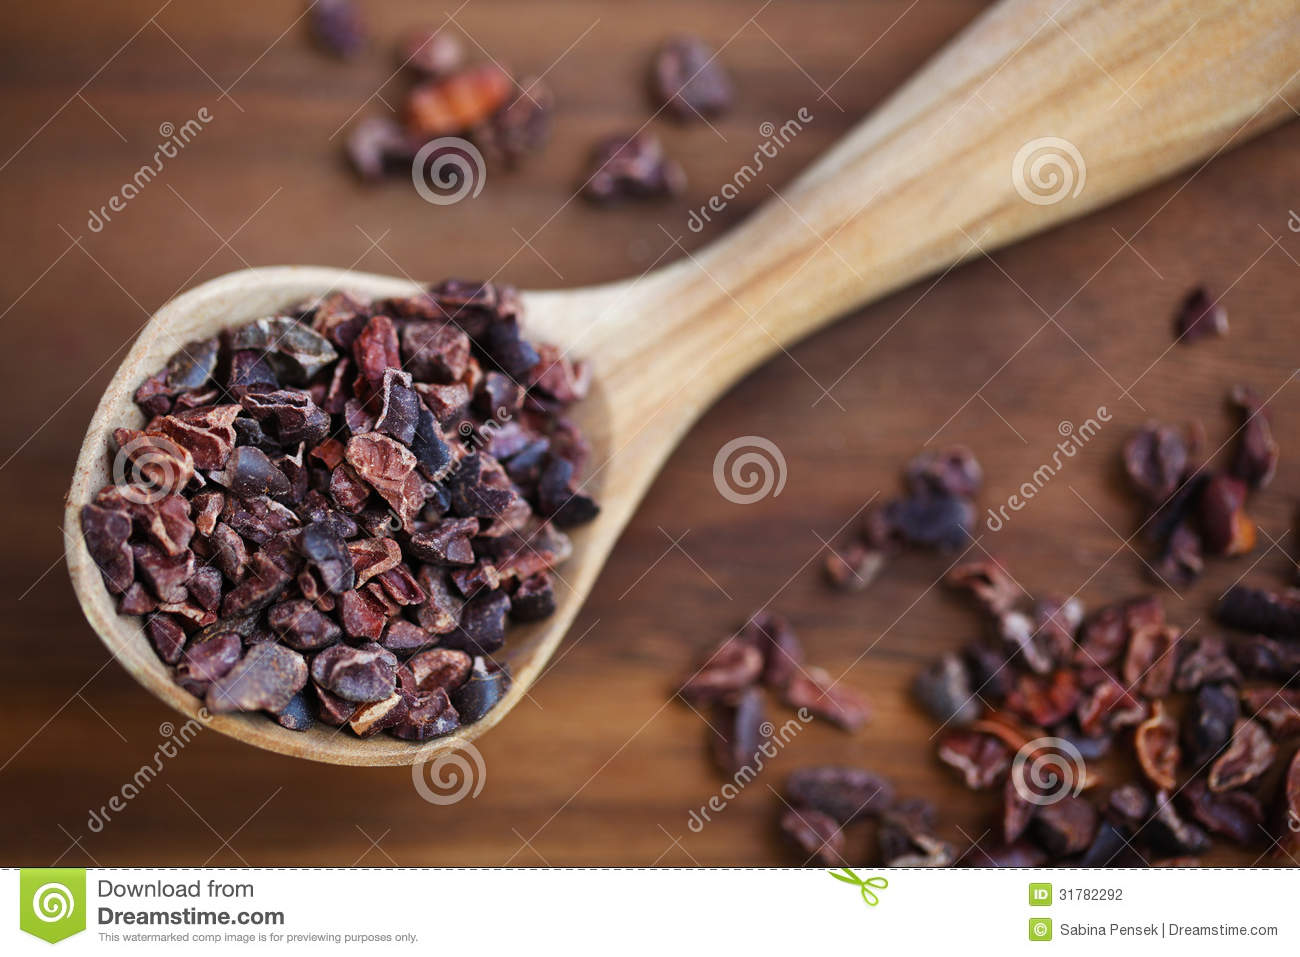 Cacao raw bean nibs or cocoa crushed